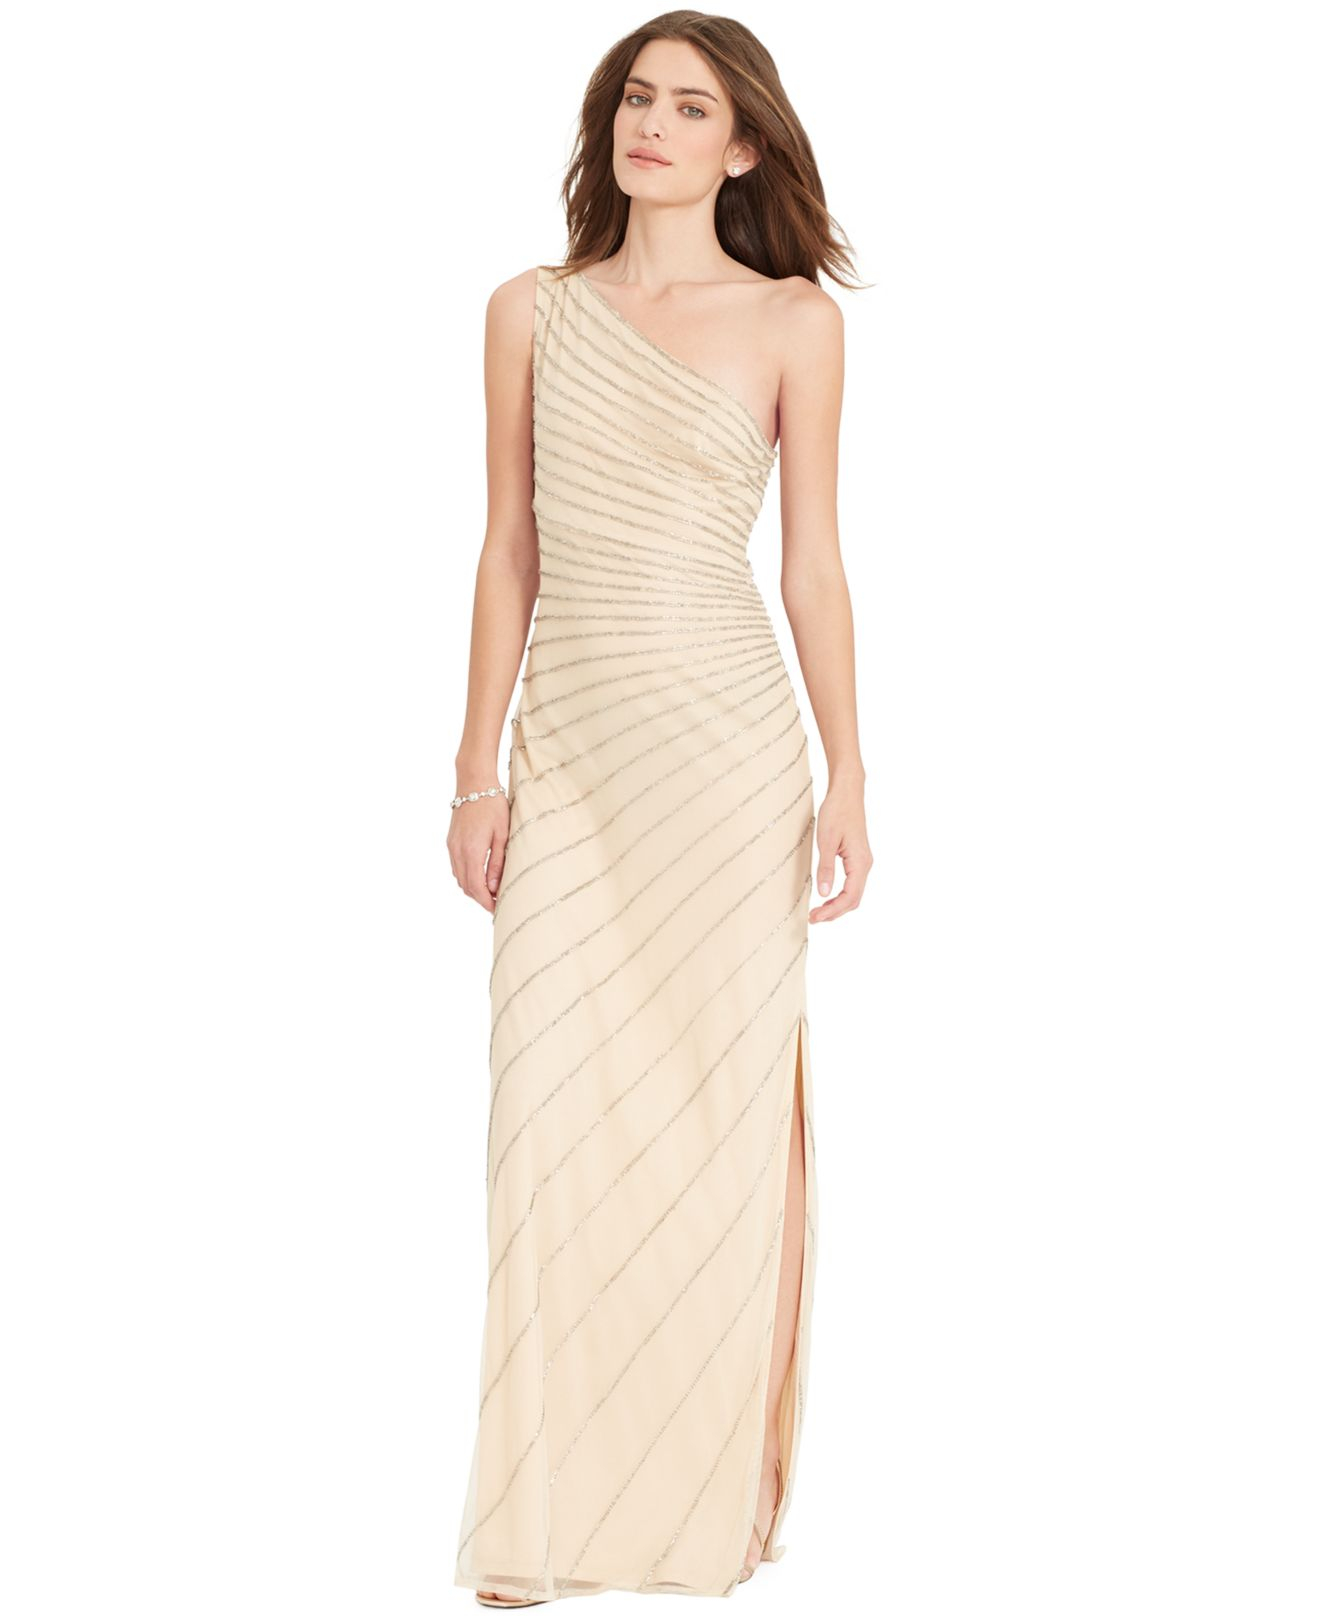 b96be2f91a Lauren by Ralph Lauren One-Shoulder Beaded Gown in Natural - Lyst